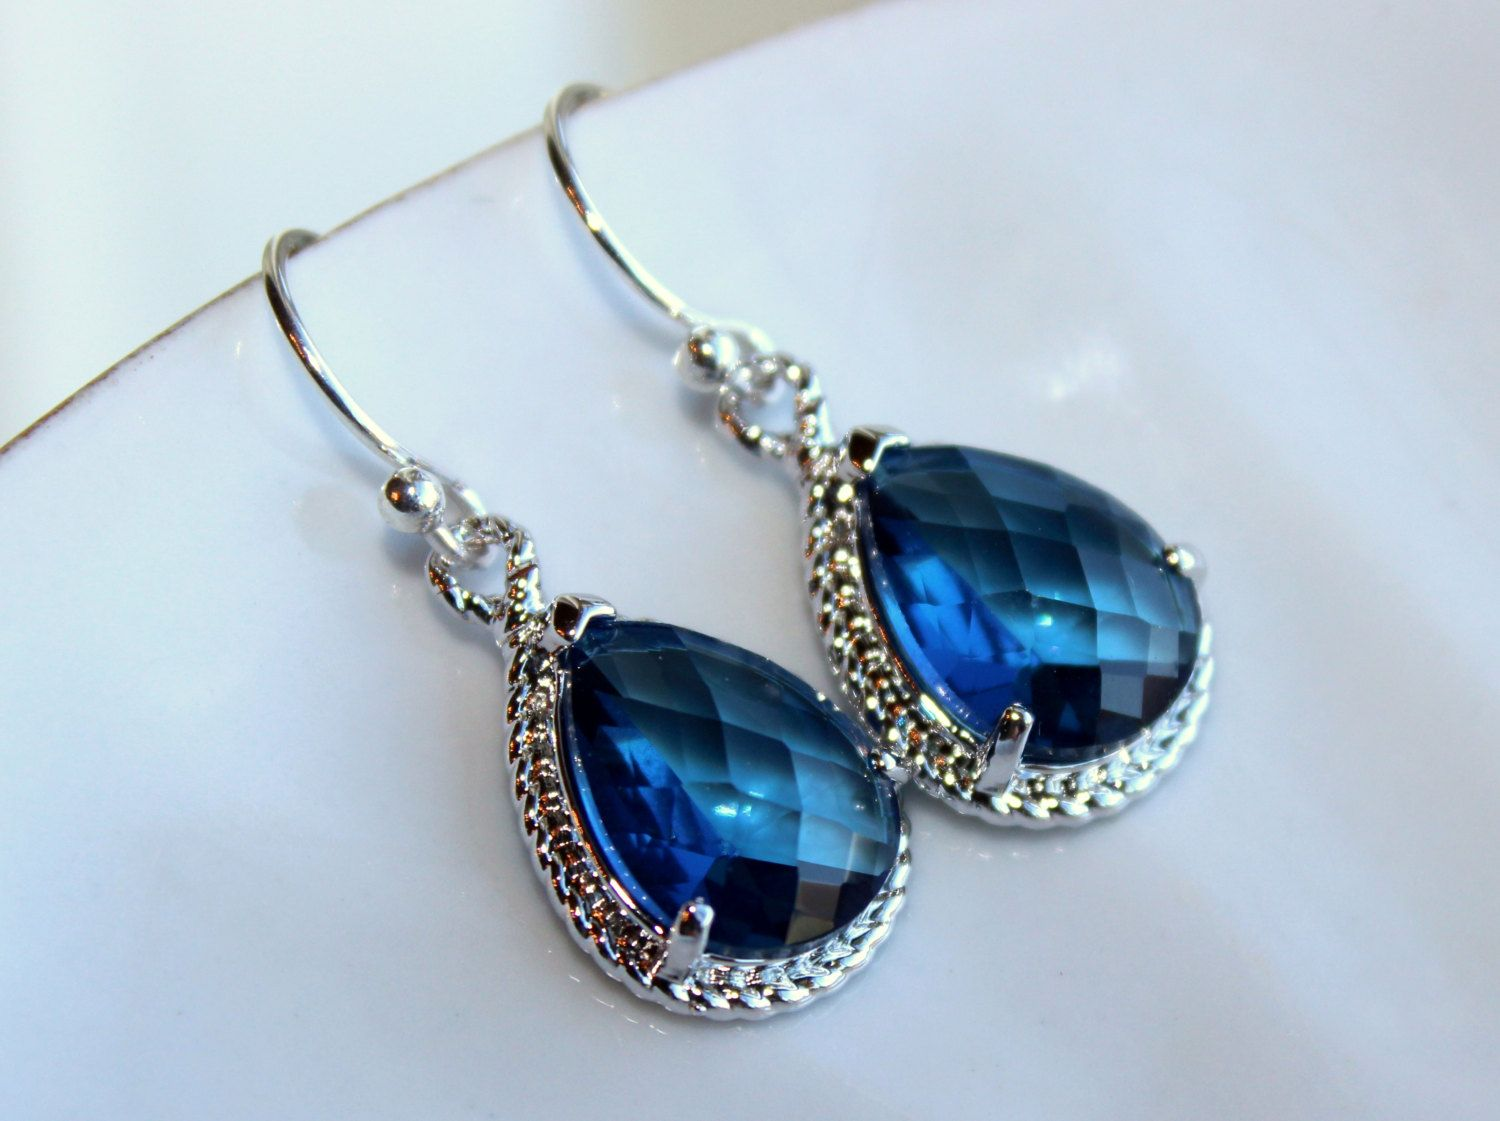 Sapphire Earrings Navy Blue Teardrop Silver Jewelry  by laalee, $30.00